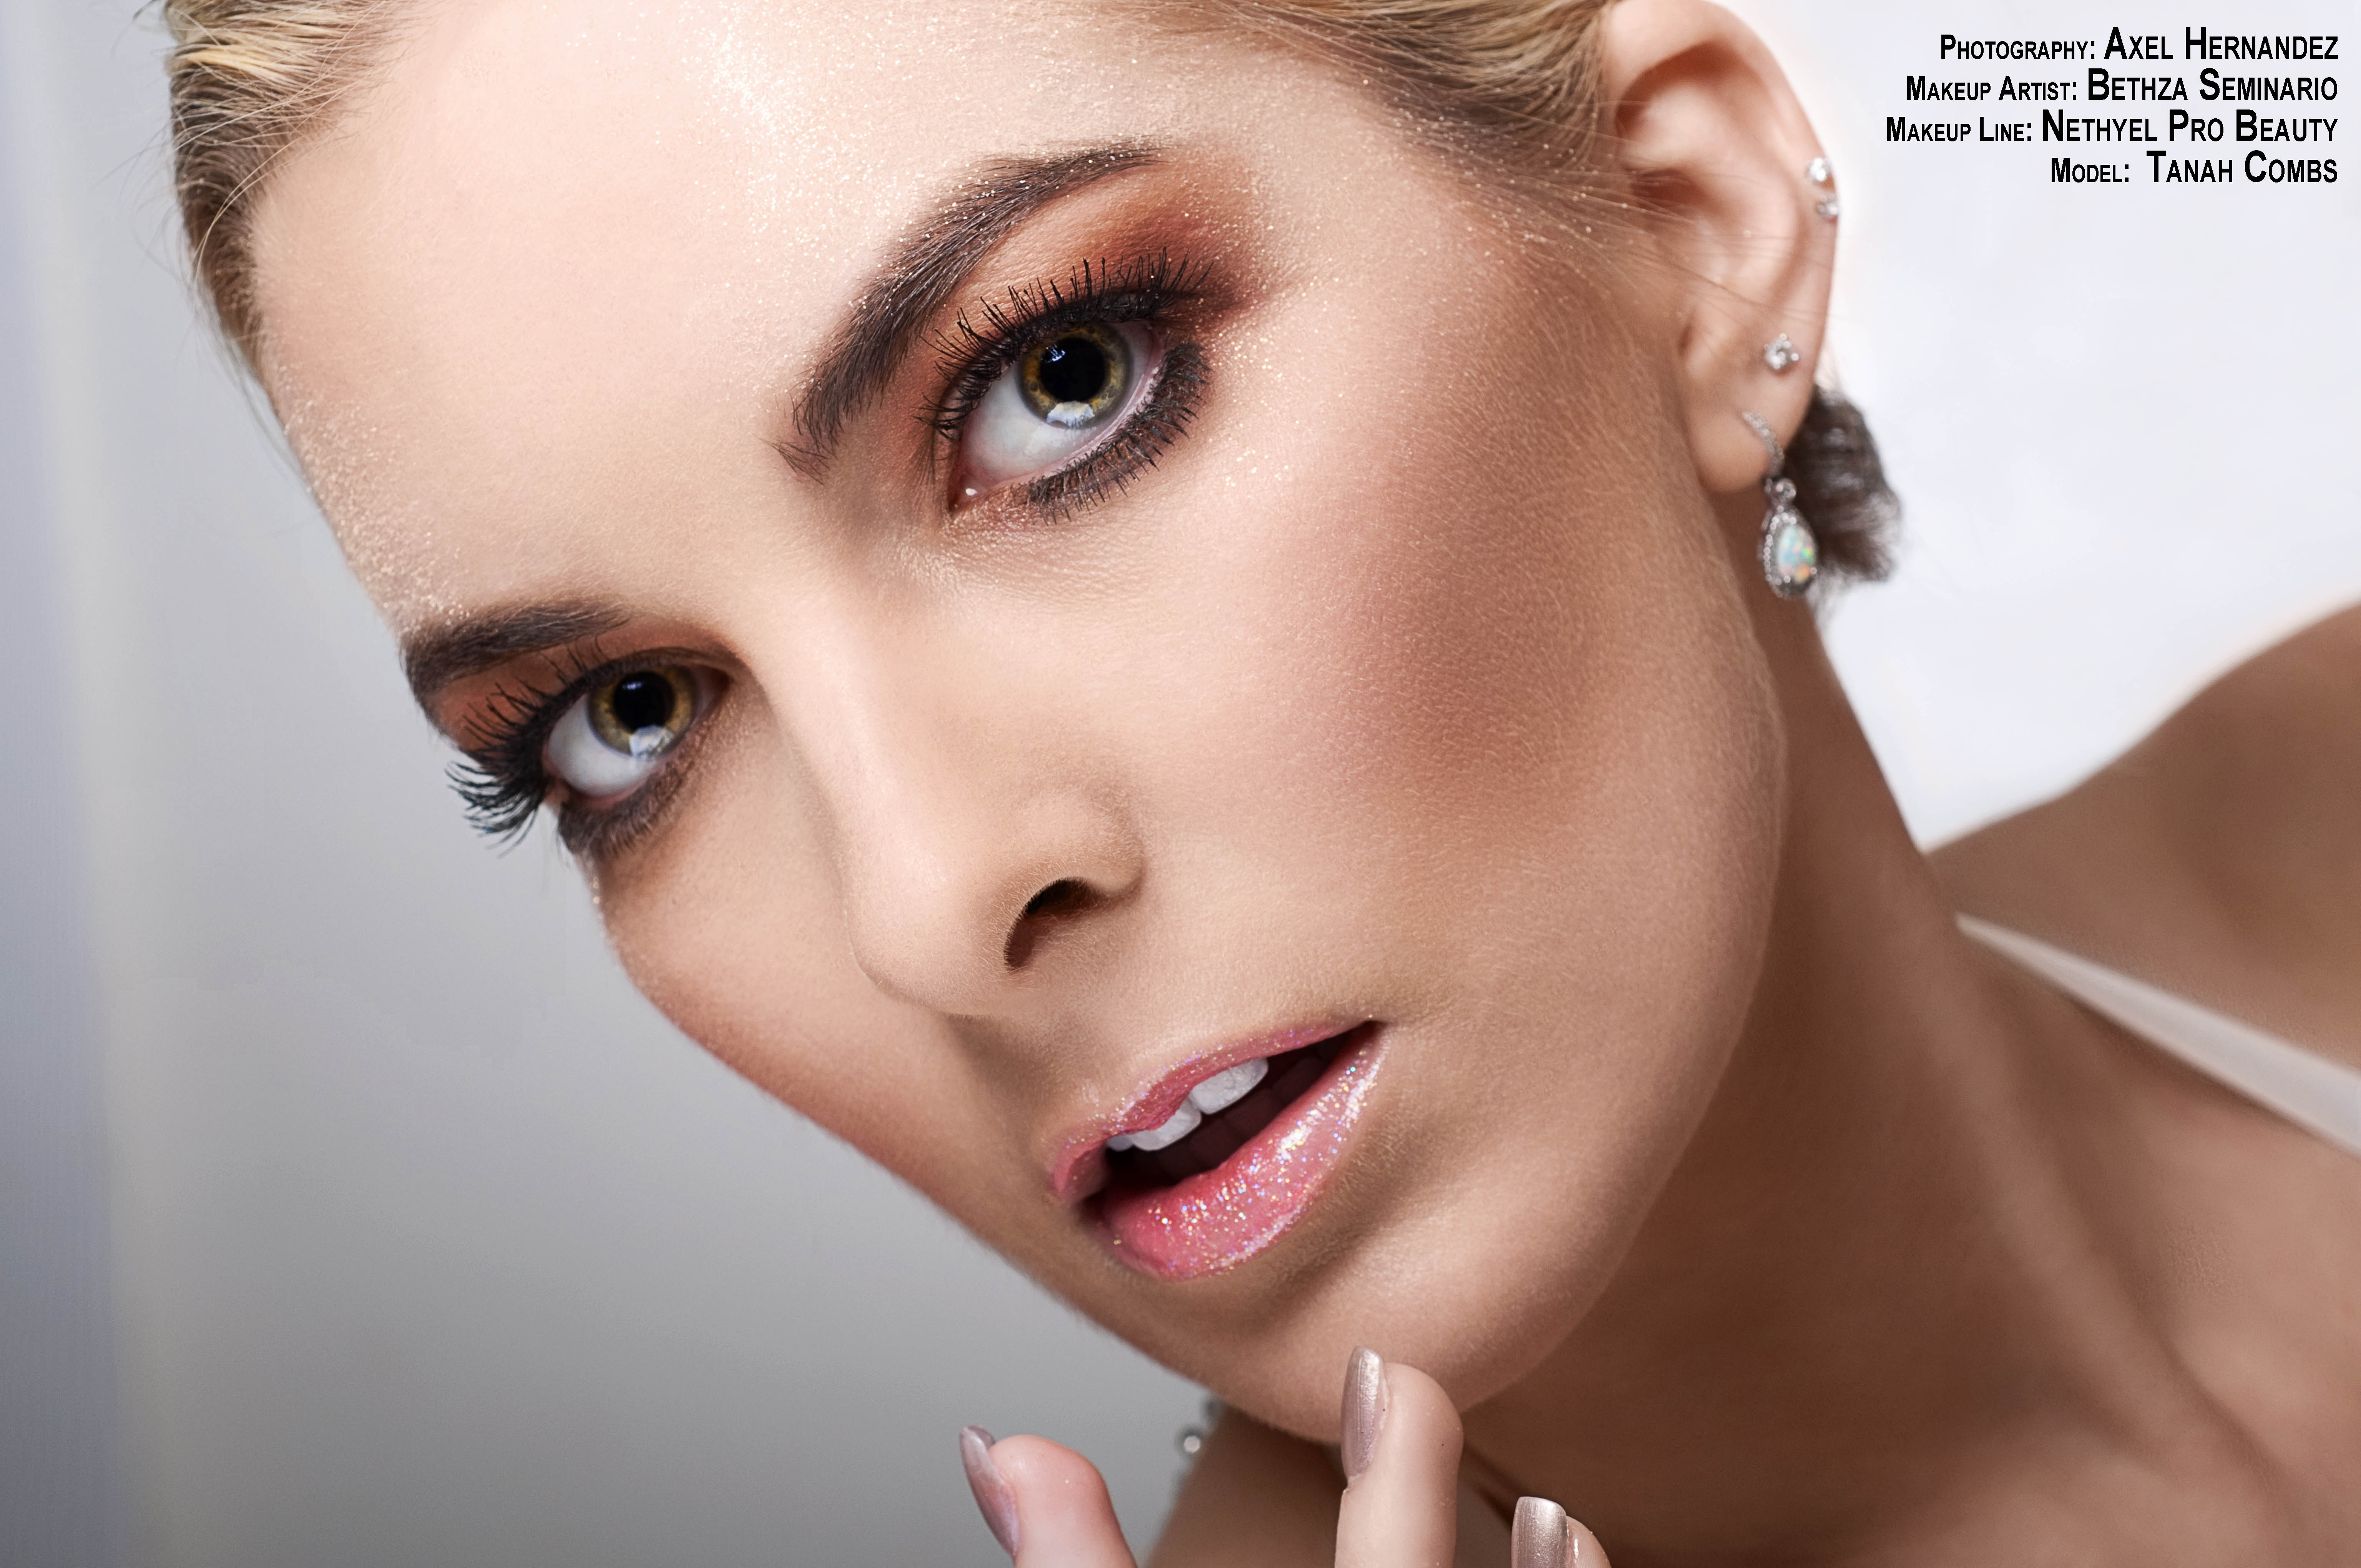 Bethza Seminario Makeup Artist Bride Wedding Makeup